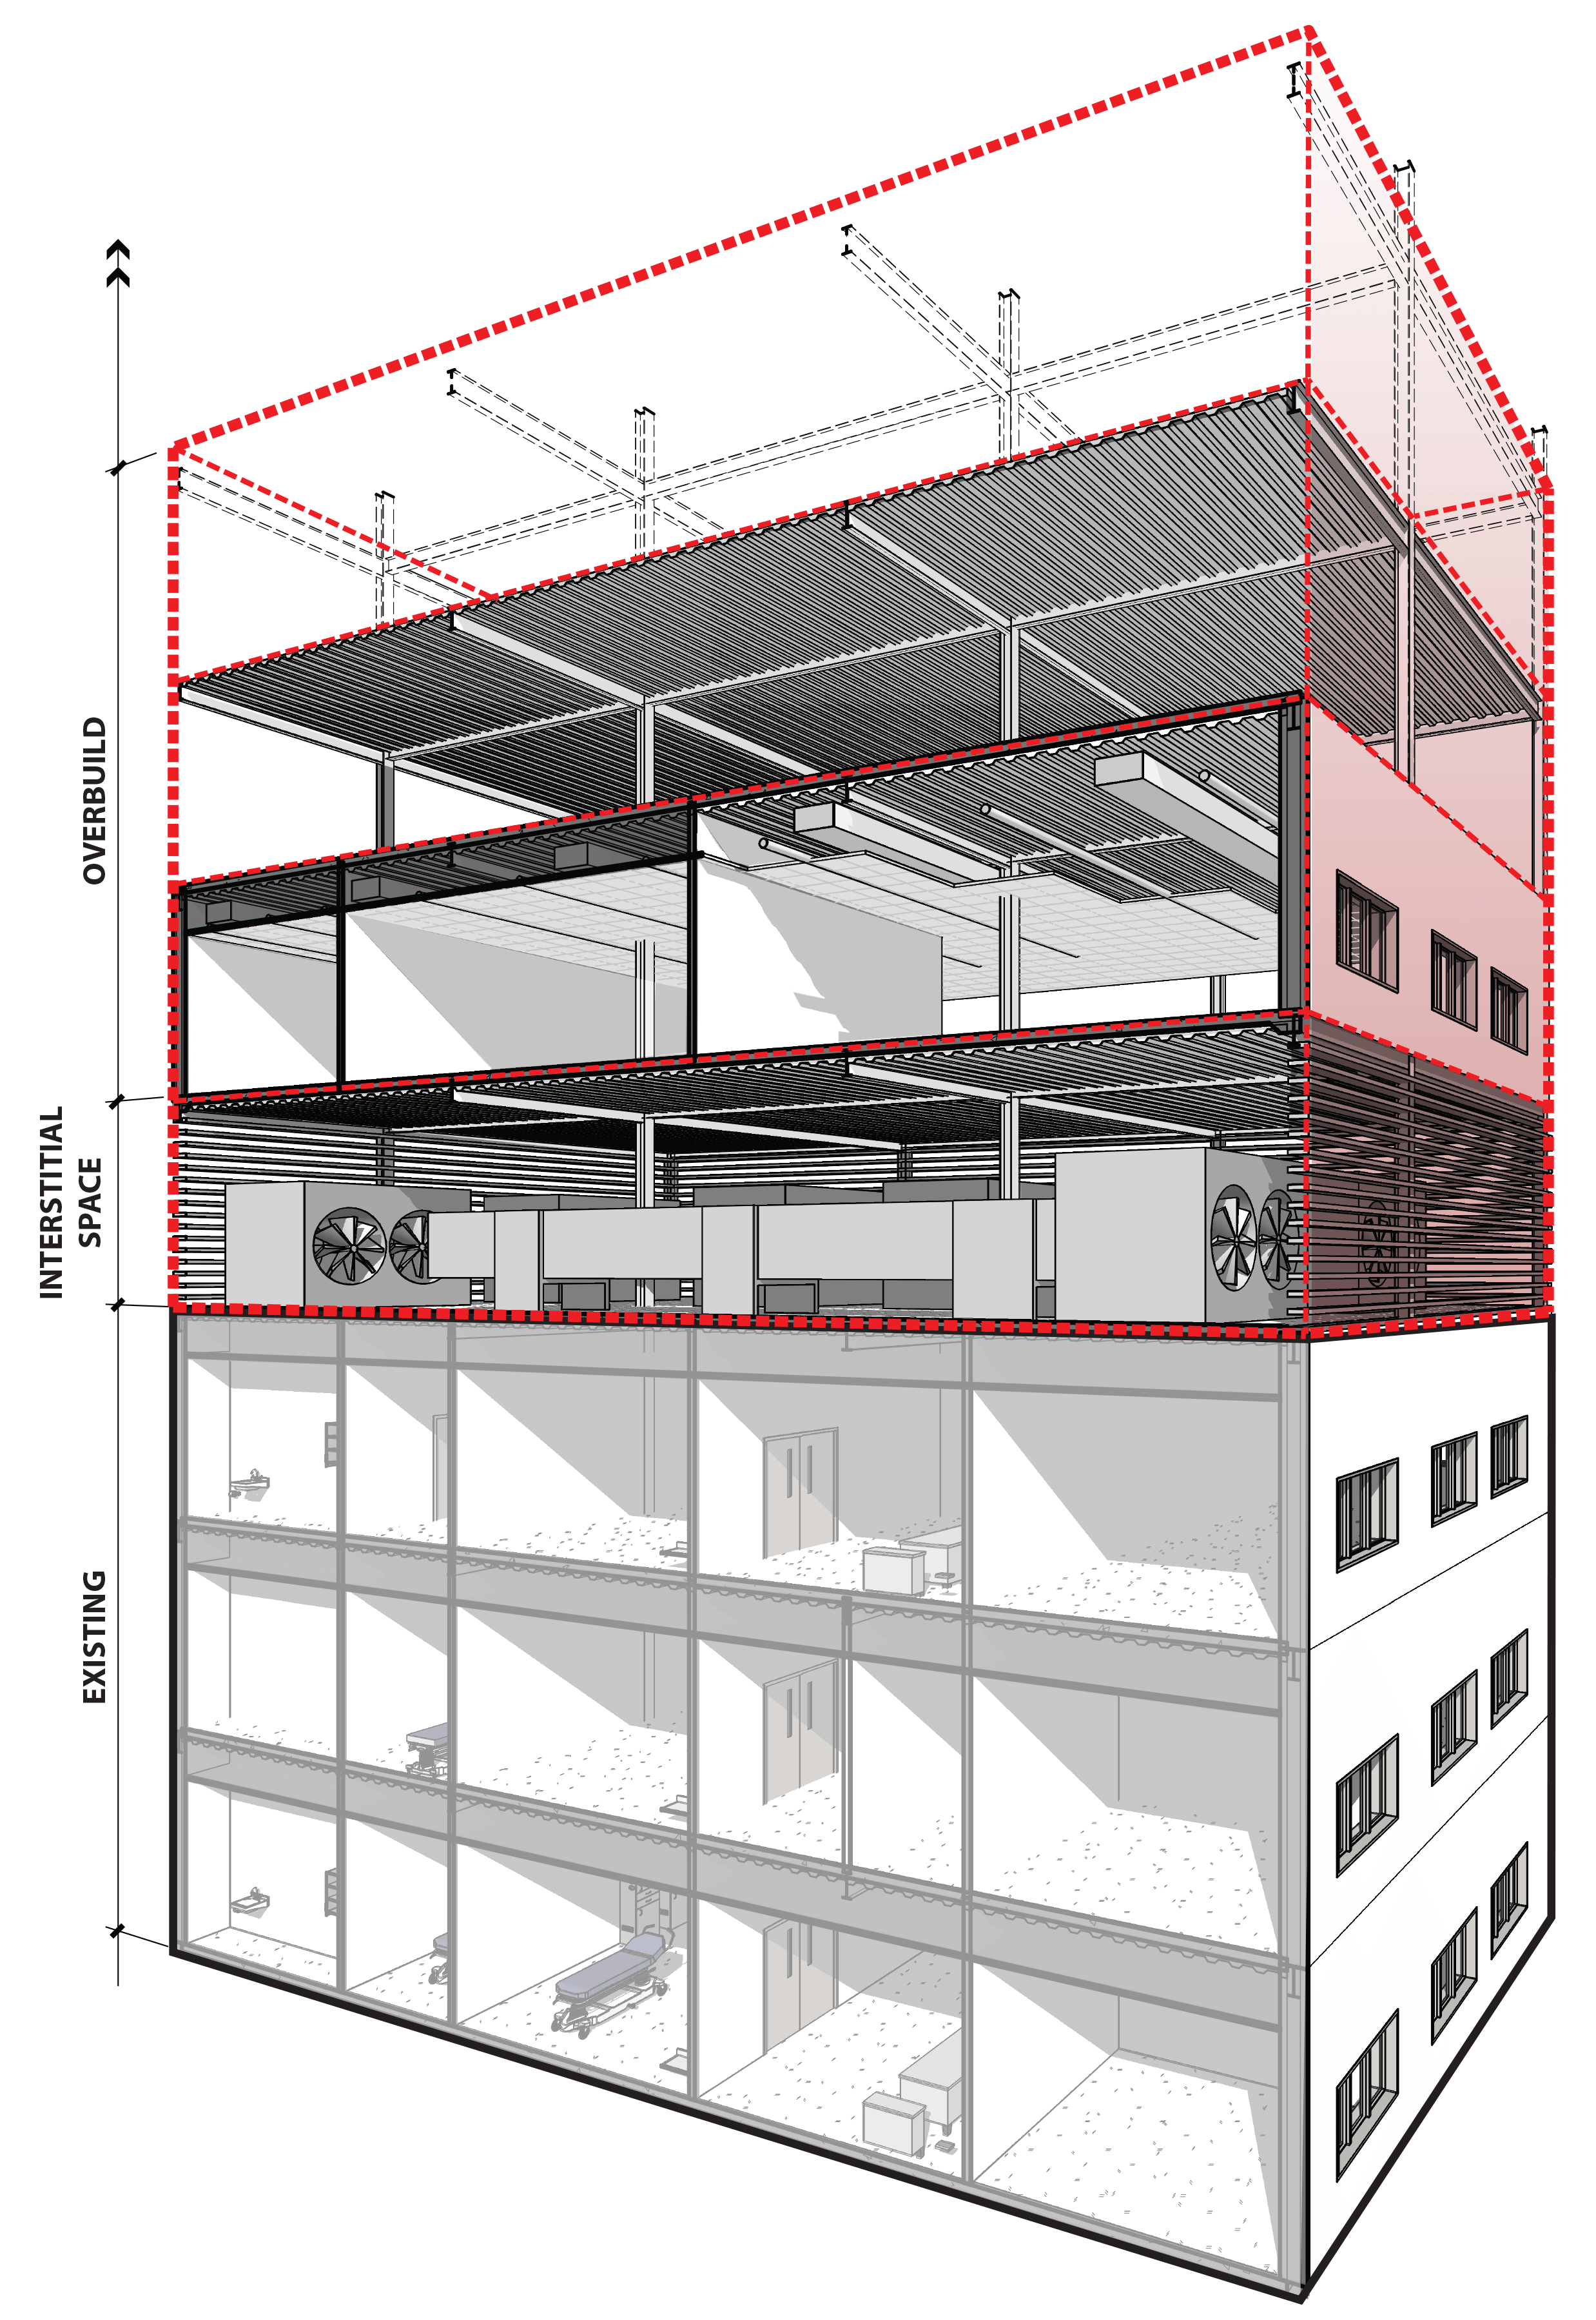 Vertical Expansion Section Perspective